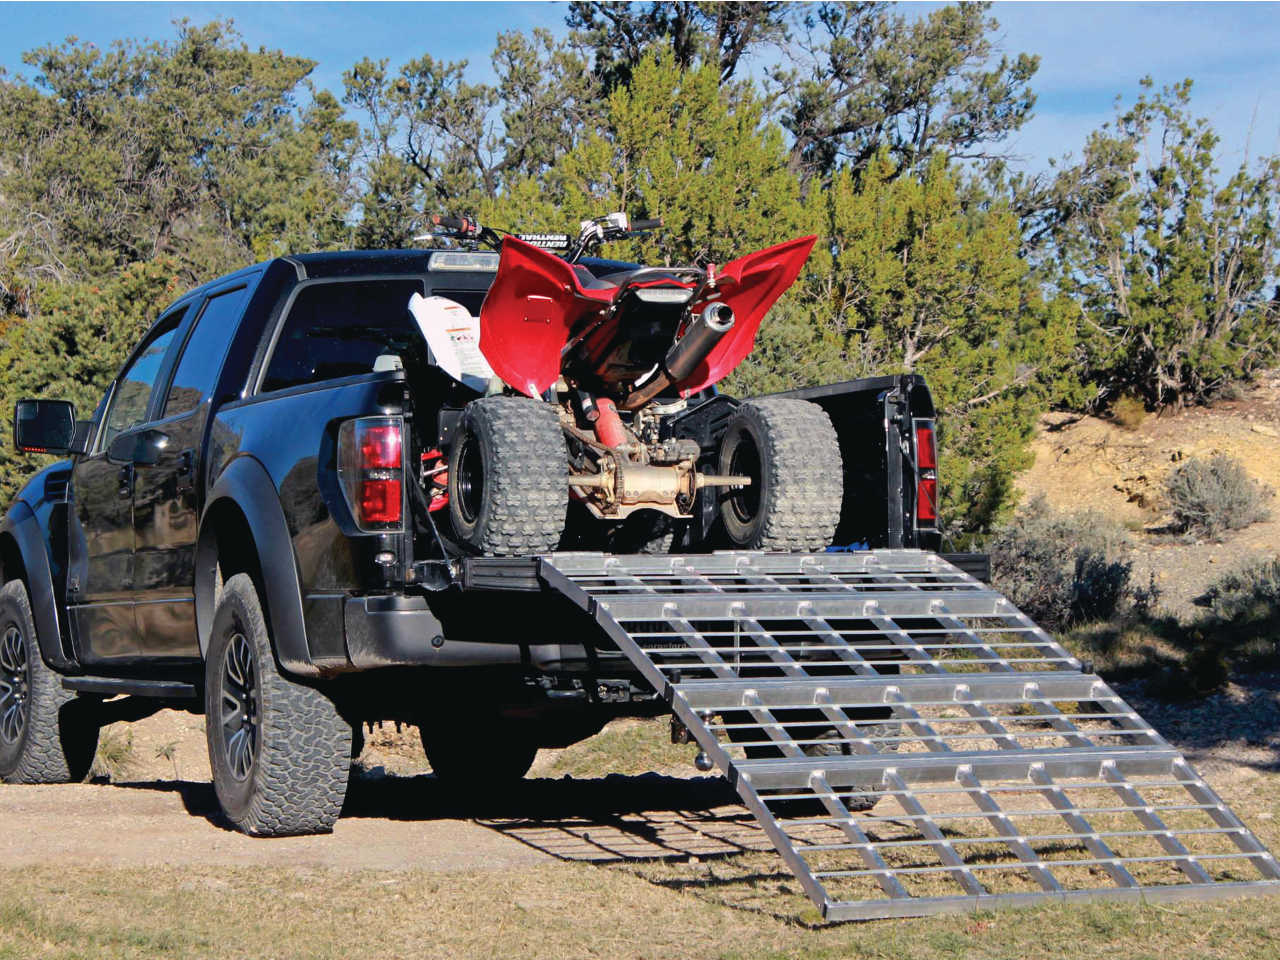 Atv Truck Ramps >> New Product Test Inside The Shark Kage Atv Illustrated